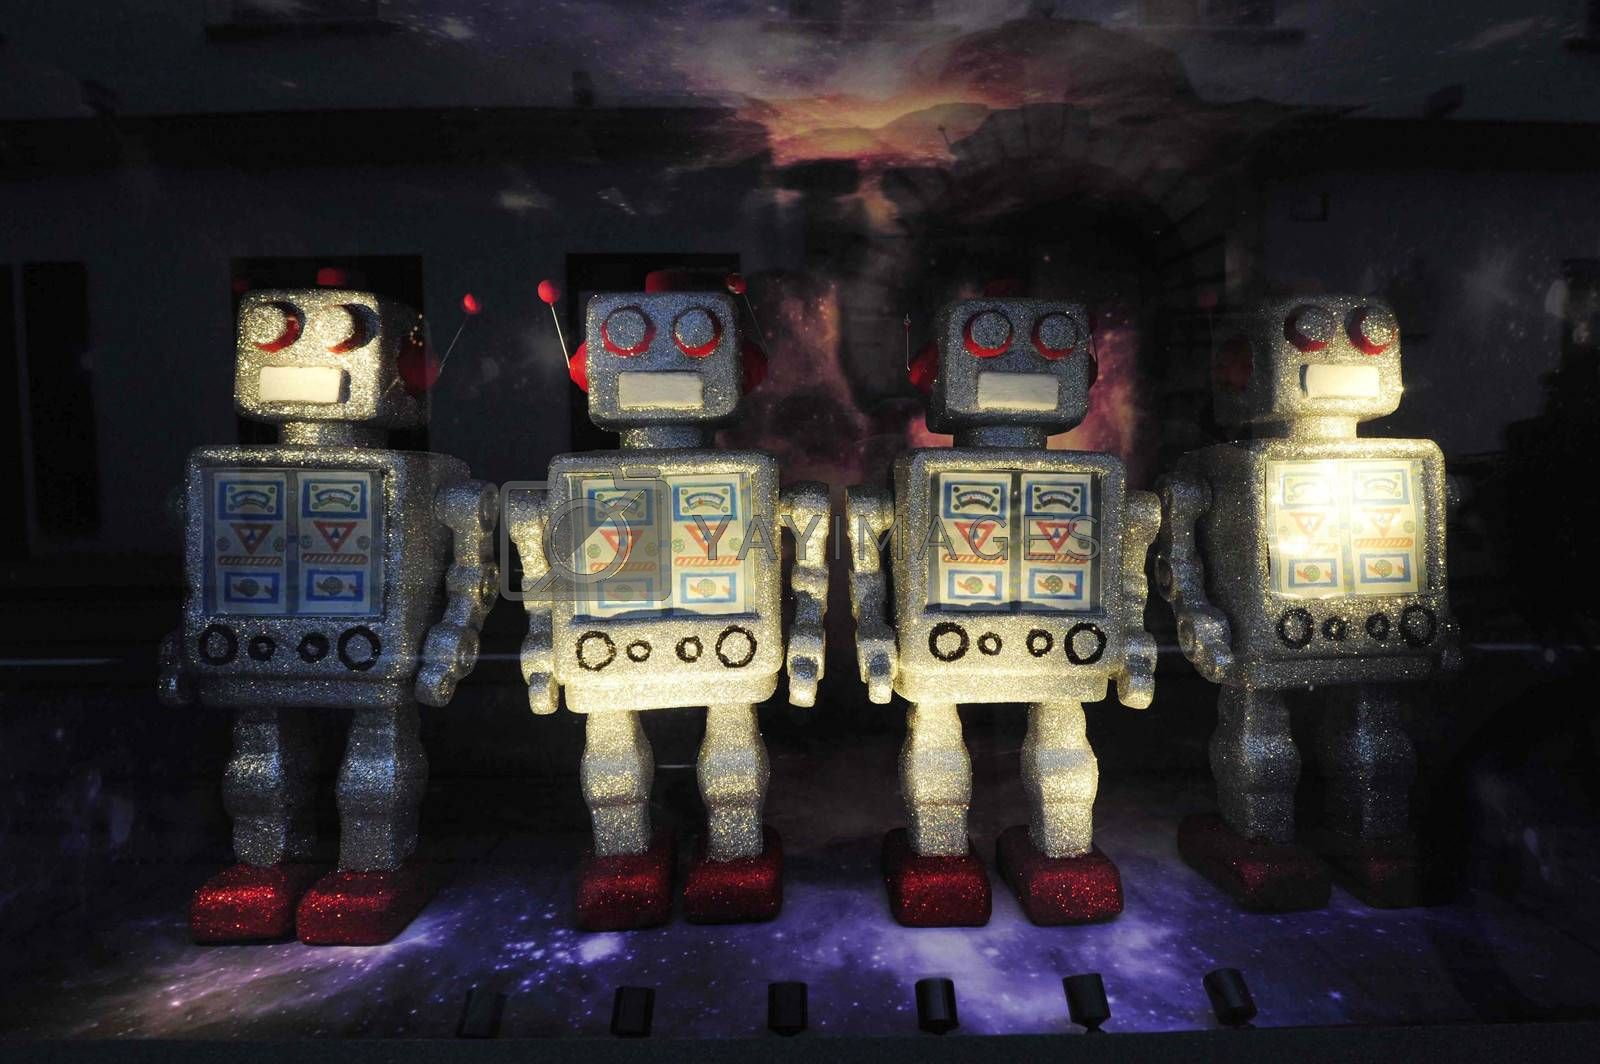 four robot toy figures standing on a dark space background